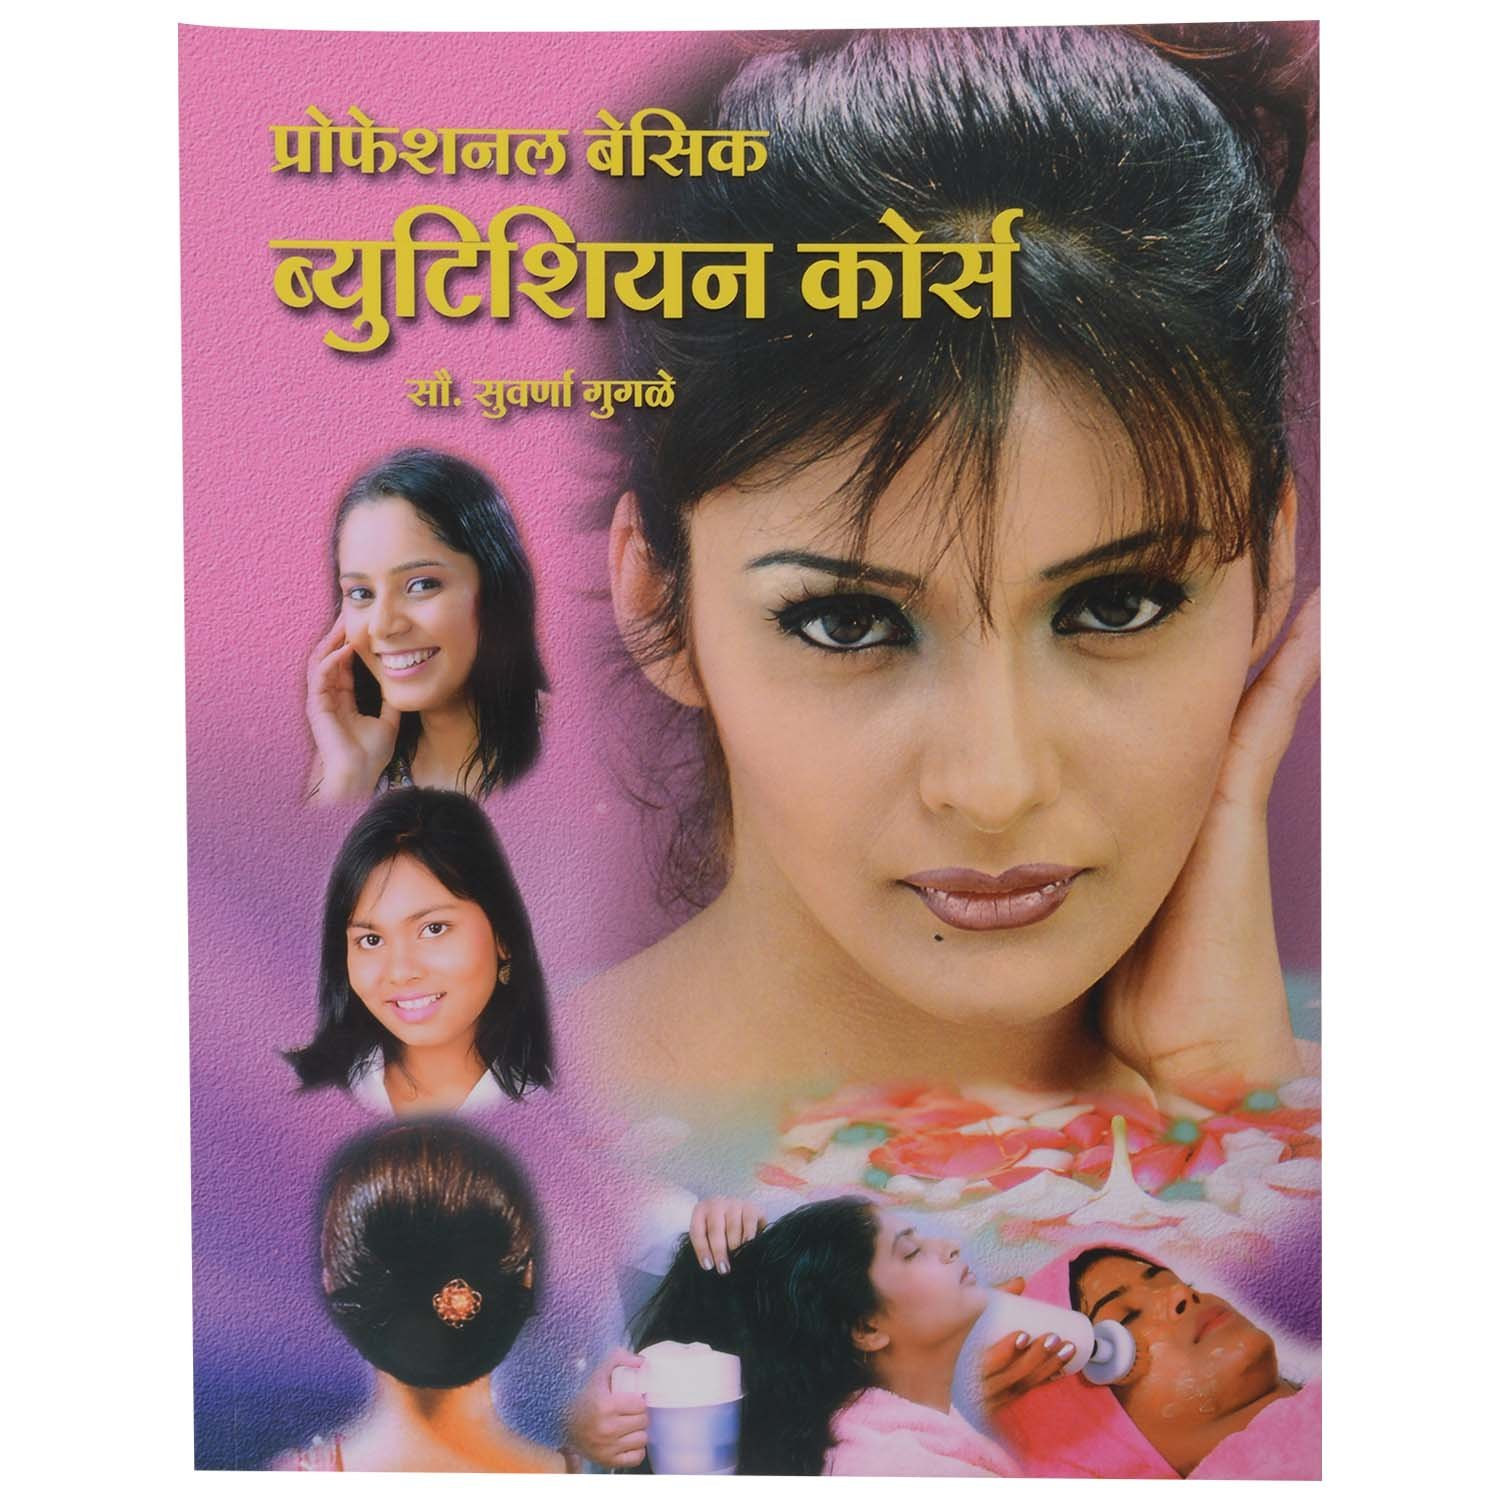 Amazon in: Buy Professional Beautician Course 'Marathi' Book Online